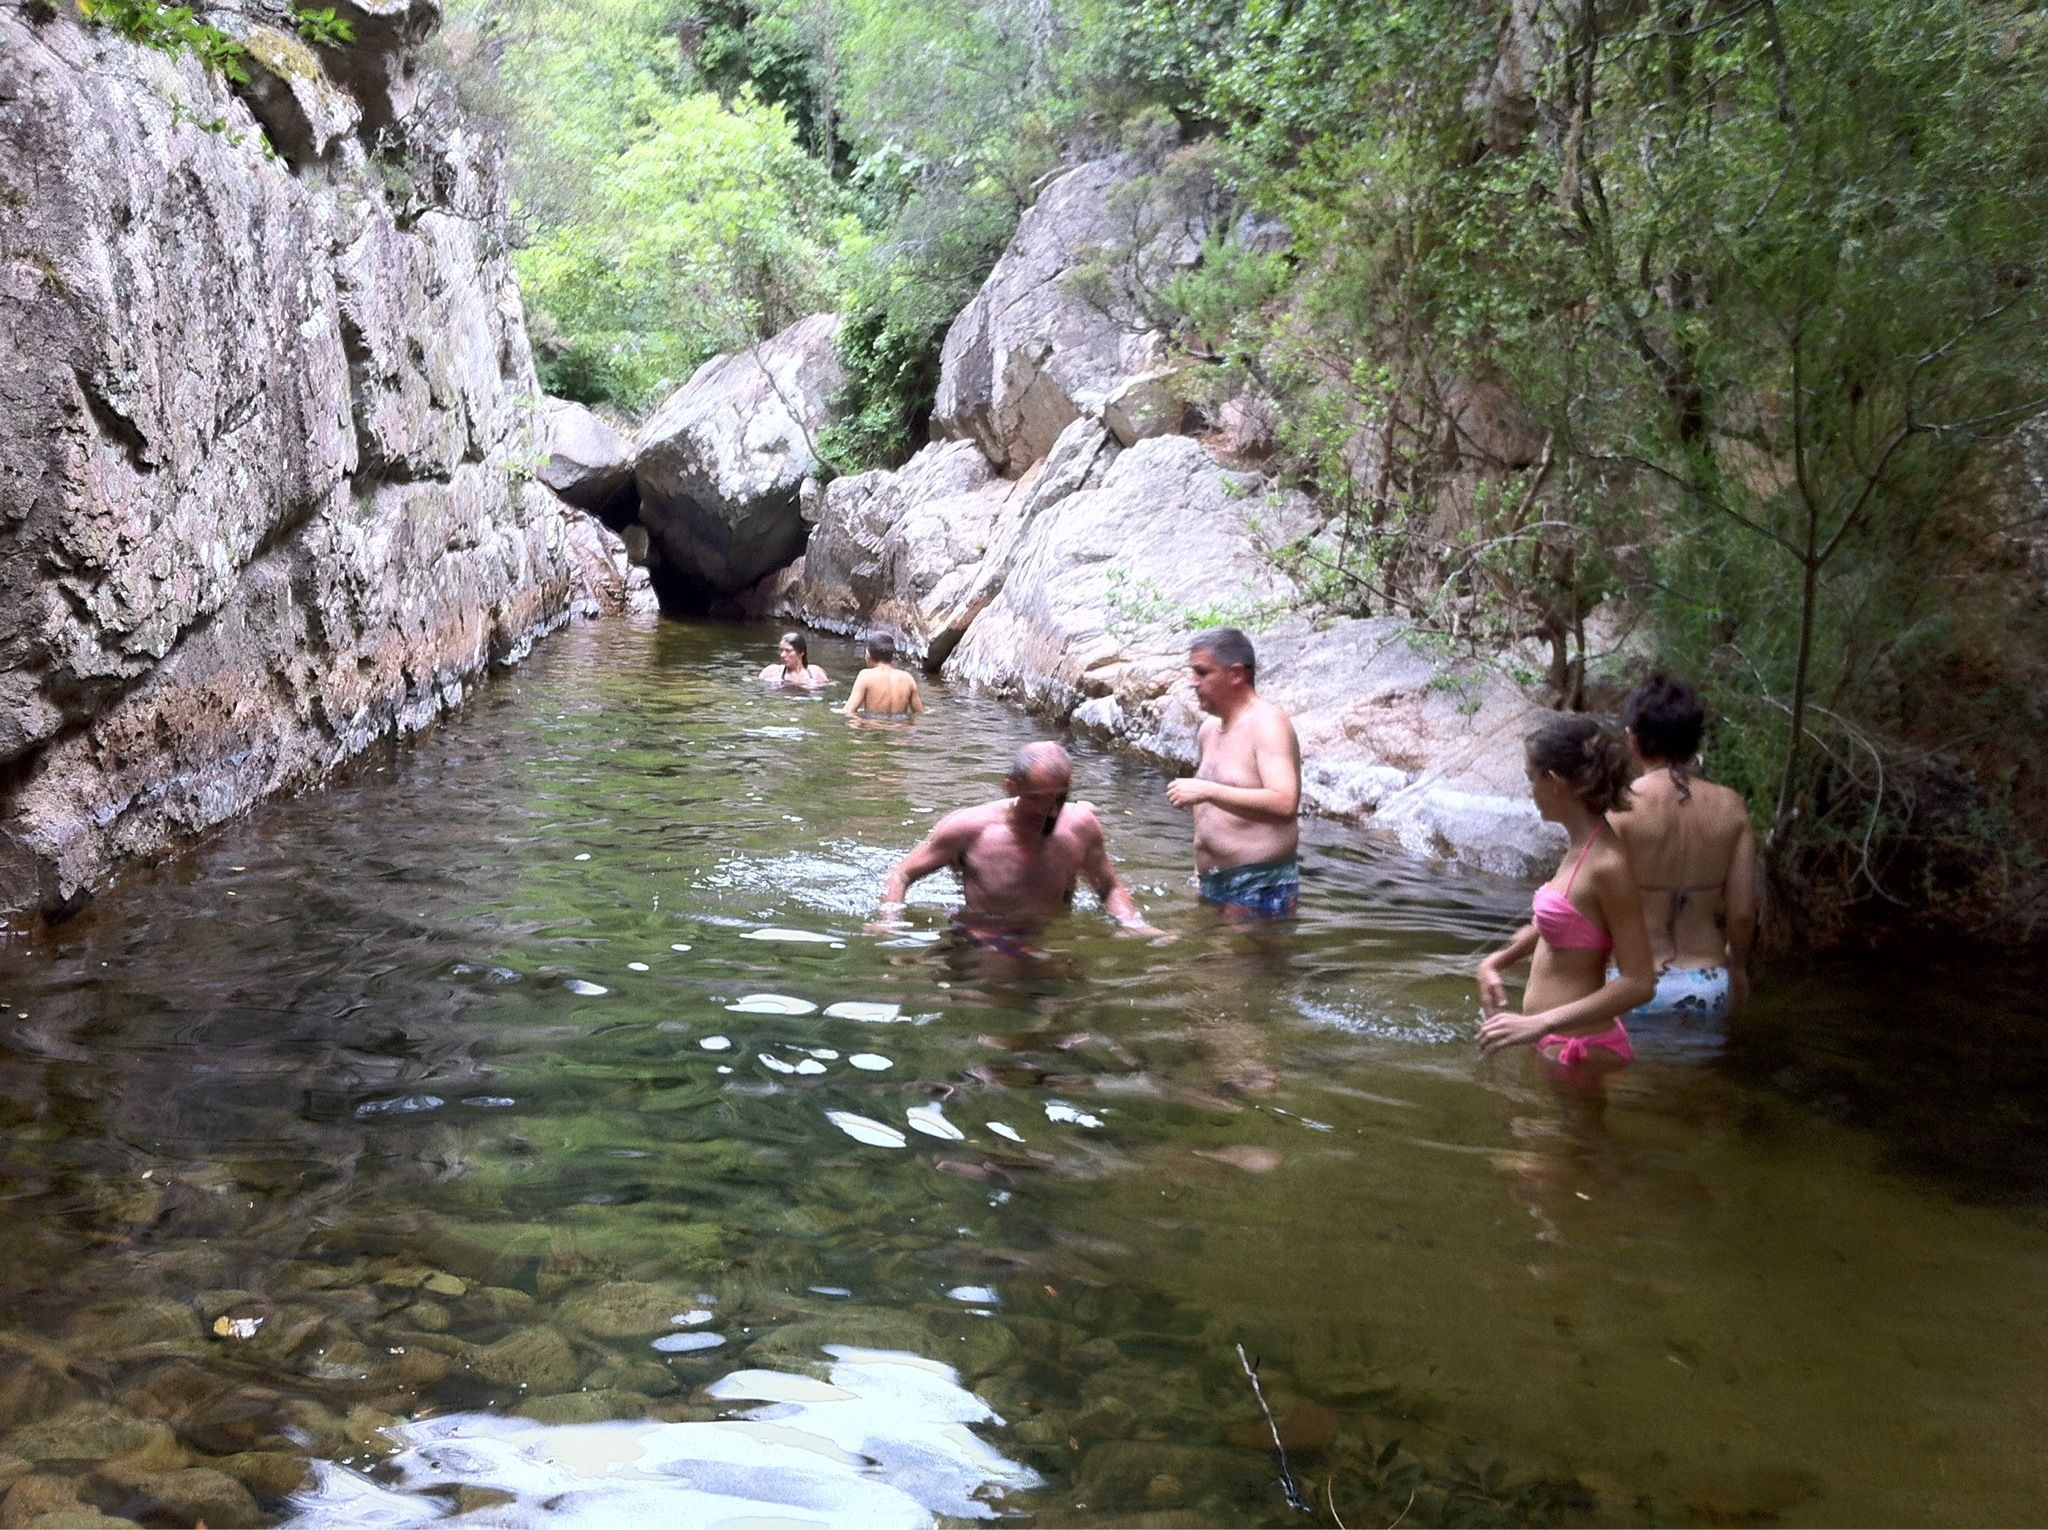 Piscine naturelle figari for Piscine naturelle corse